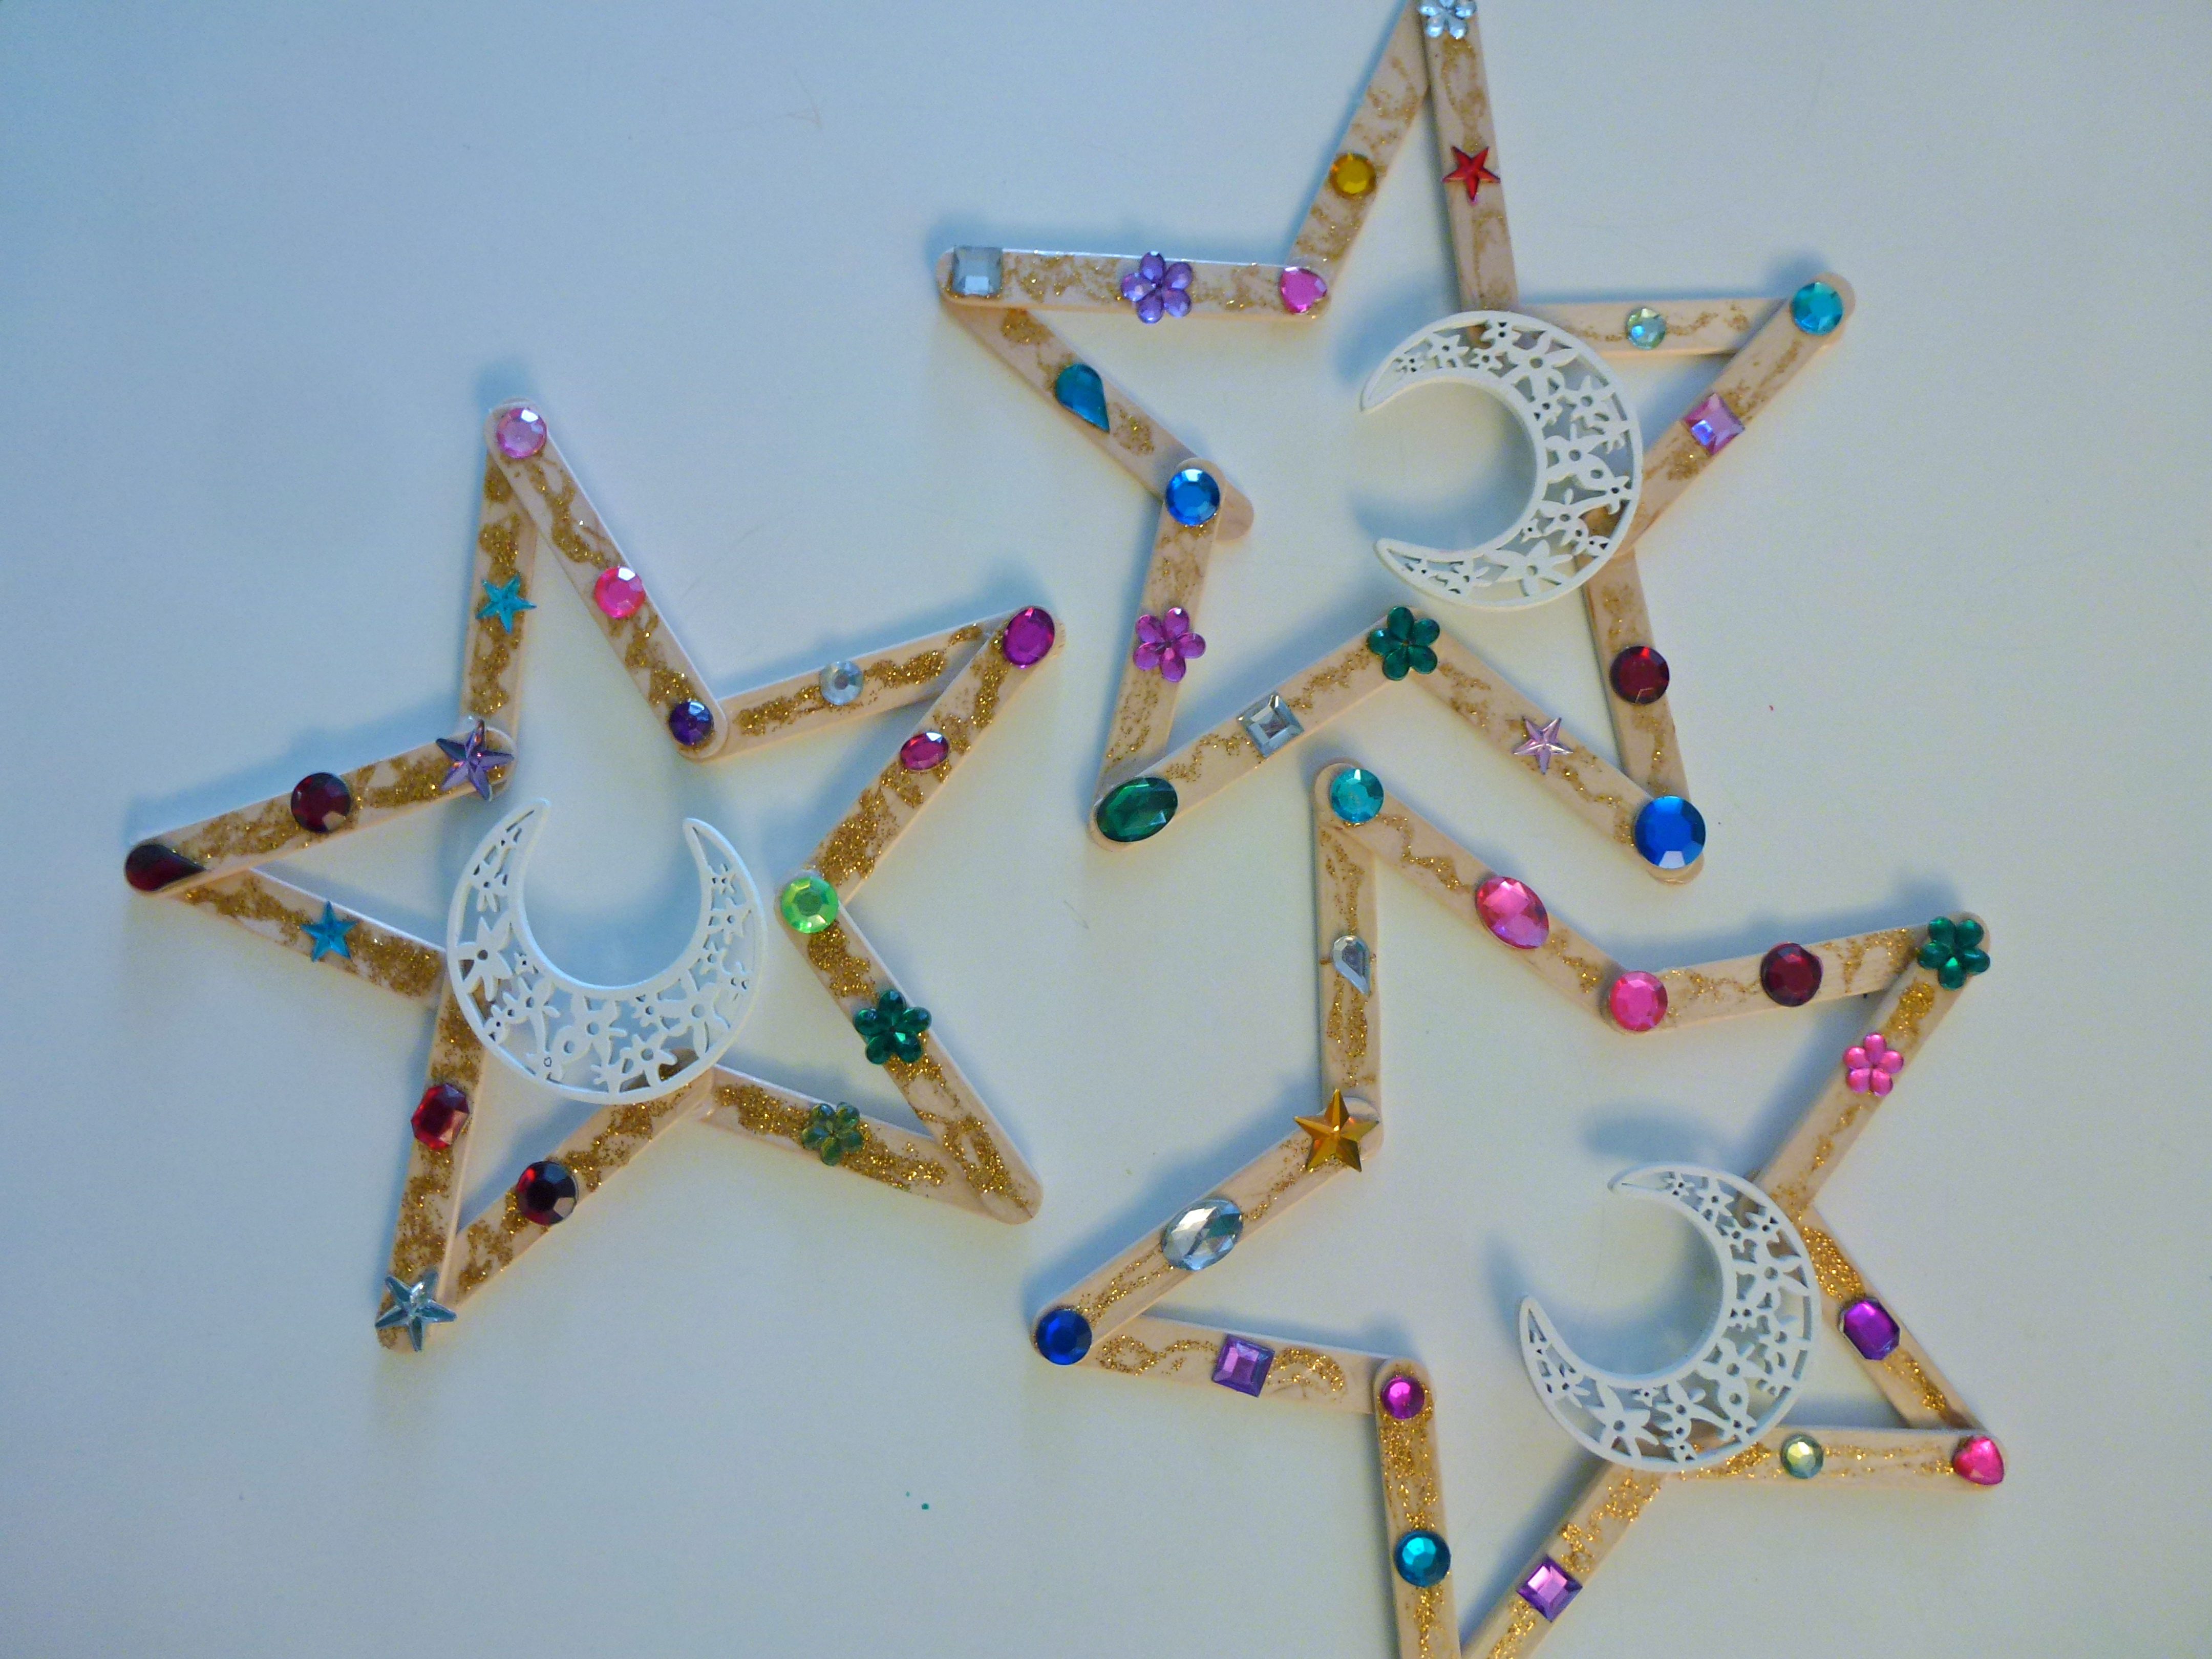 Ramadan eid crafts ideas muslim learning garden page 2 for Arts and crafts decoration